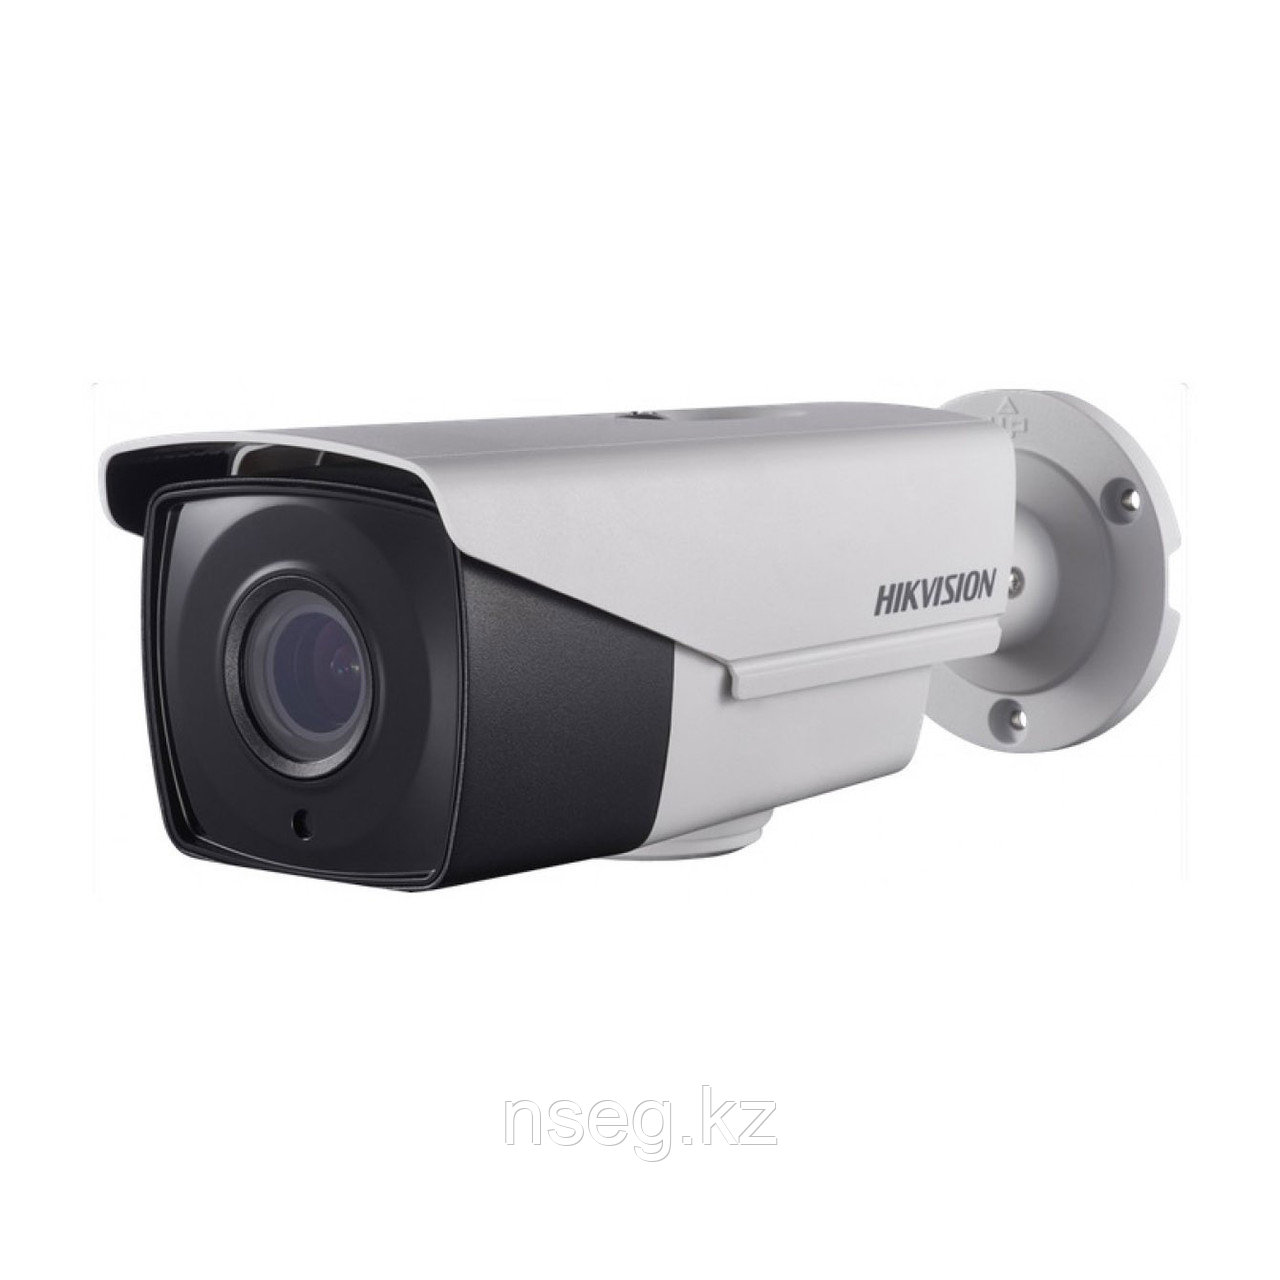 HIKVISION DS-2CE16F7T-IT3Z уличные HD камеры